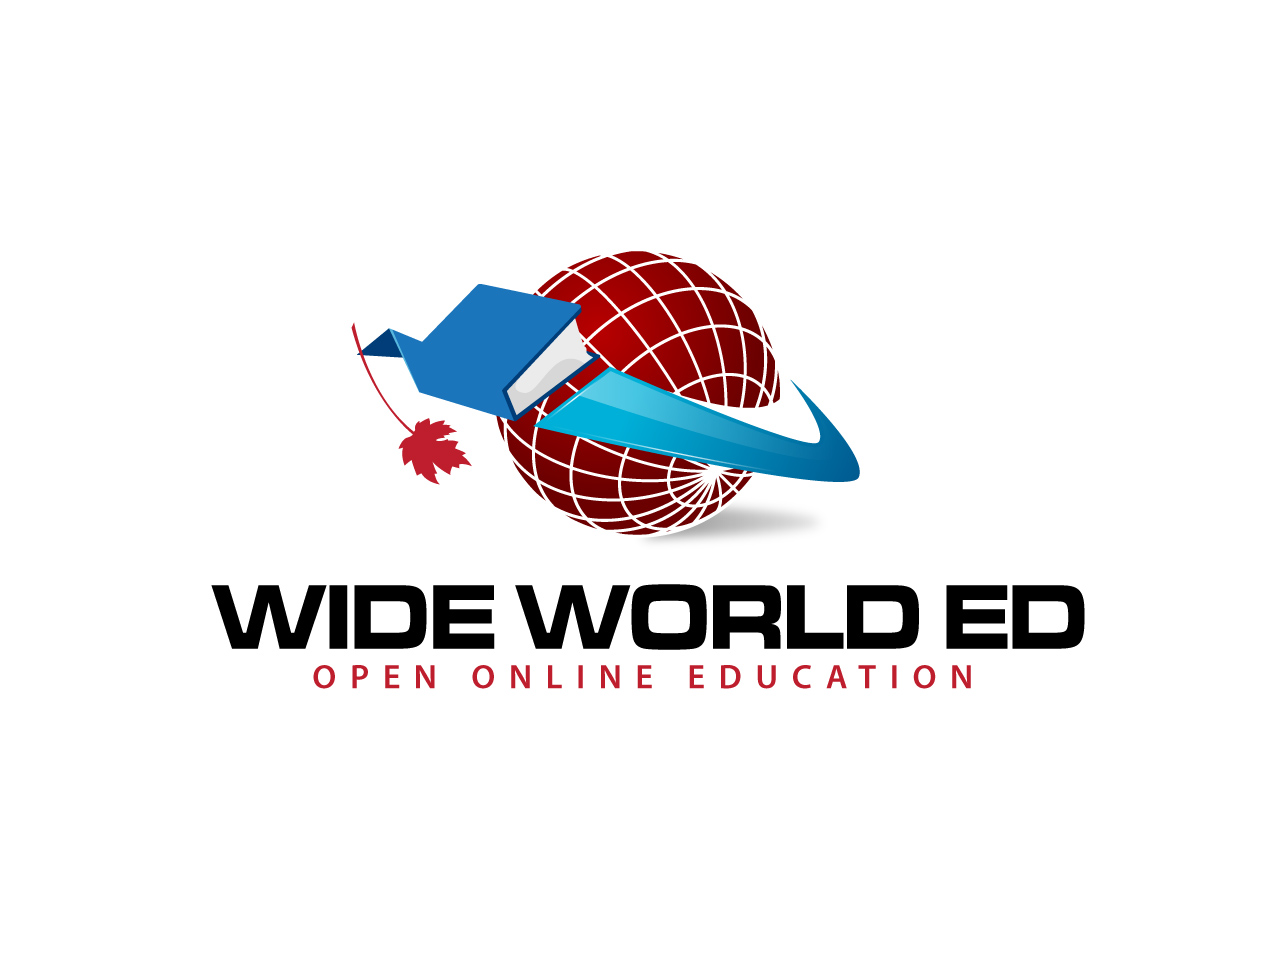 Logo Design by jpbituin - Entry No. 29 in the Logo Design Contest New Logo Design for Wide World Ed.